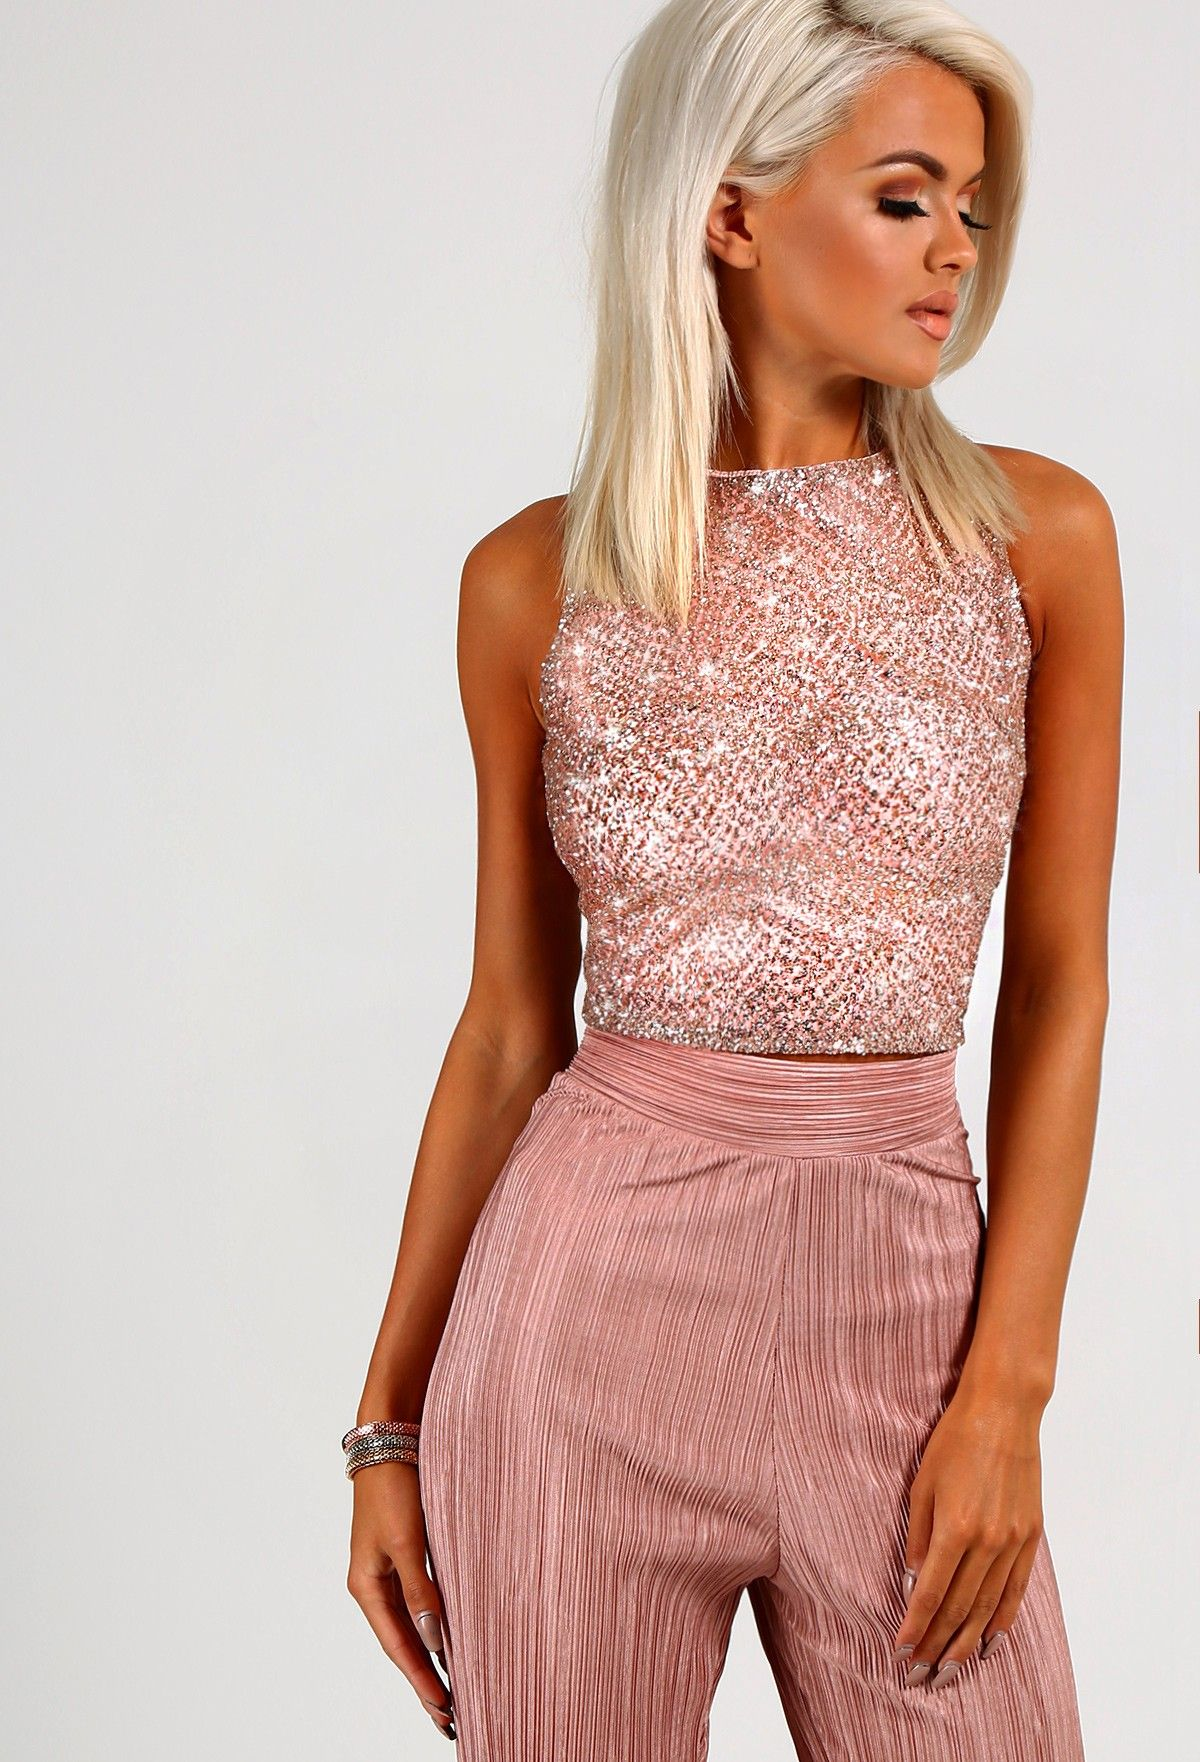 872653d9c6492 Roseanne Rose Gold Glitter Crop Top - 8